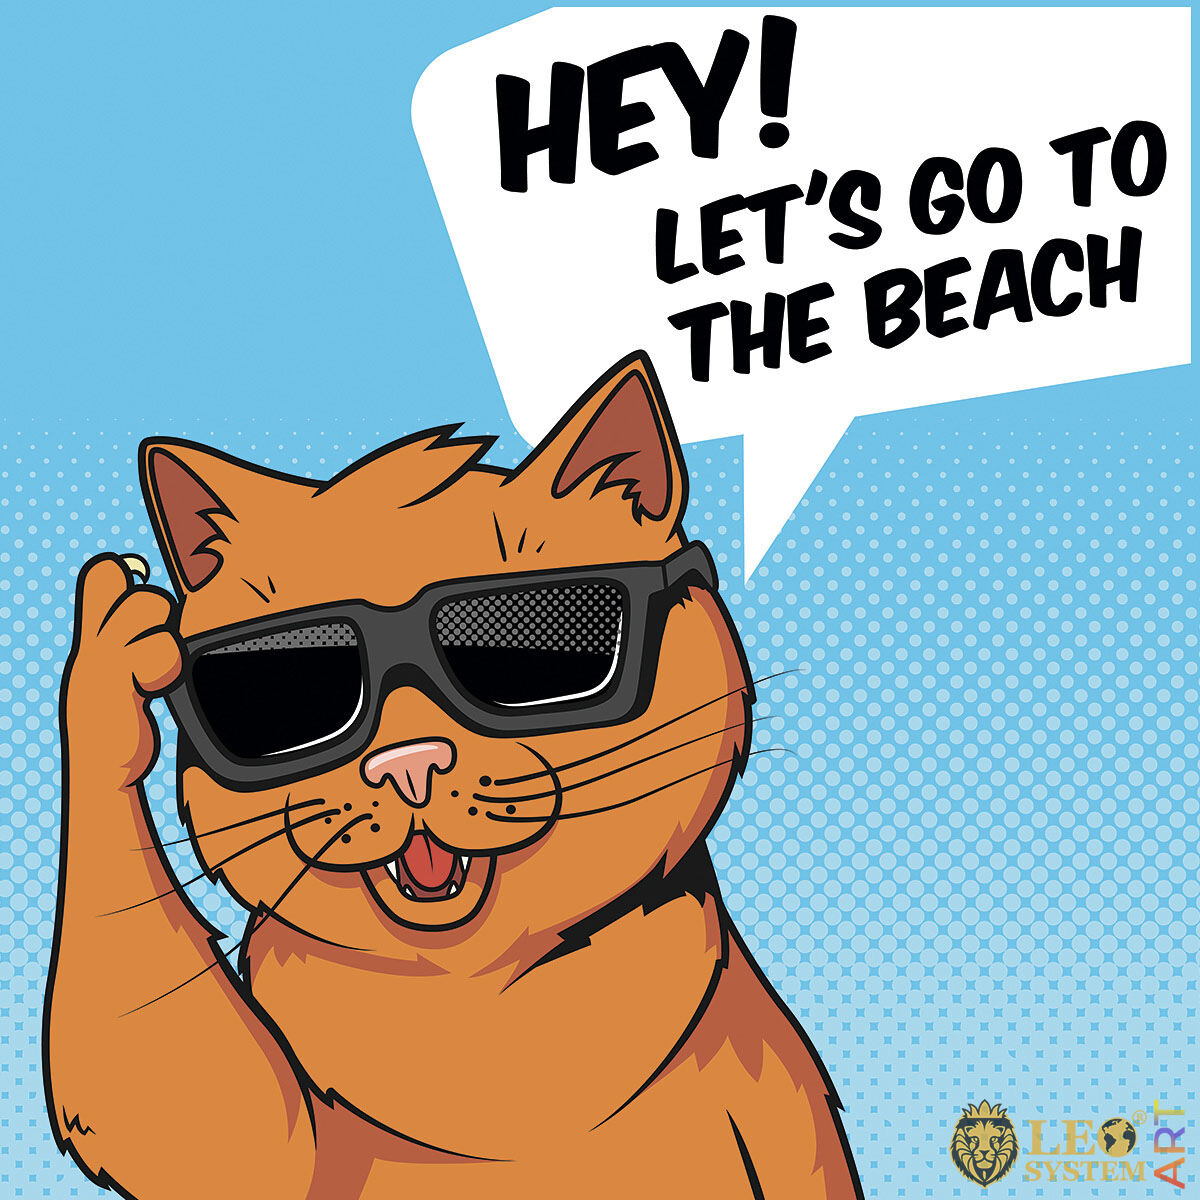 Comic cat invites everyone to go to the beach